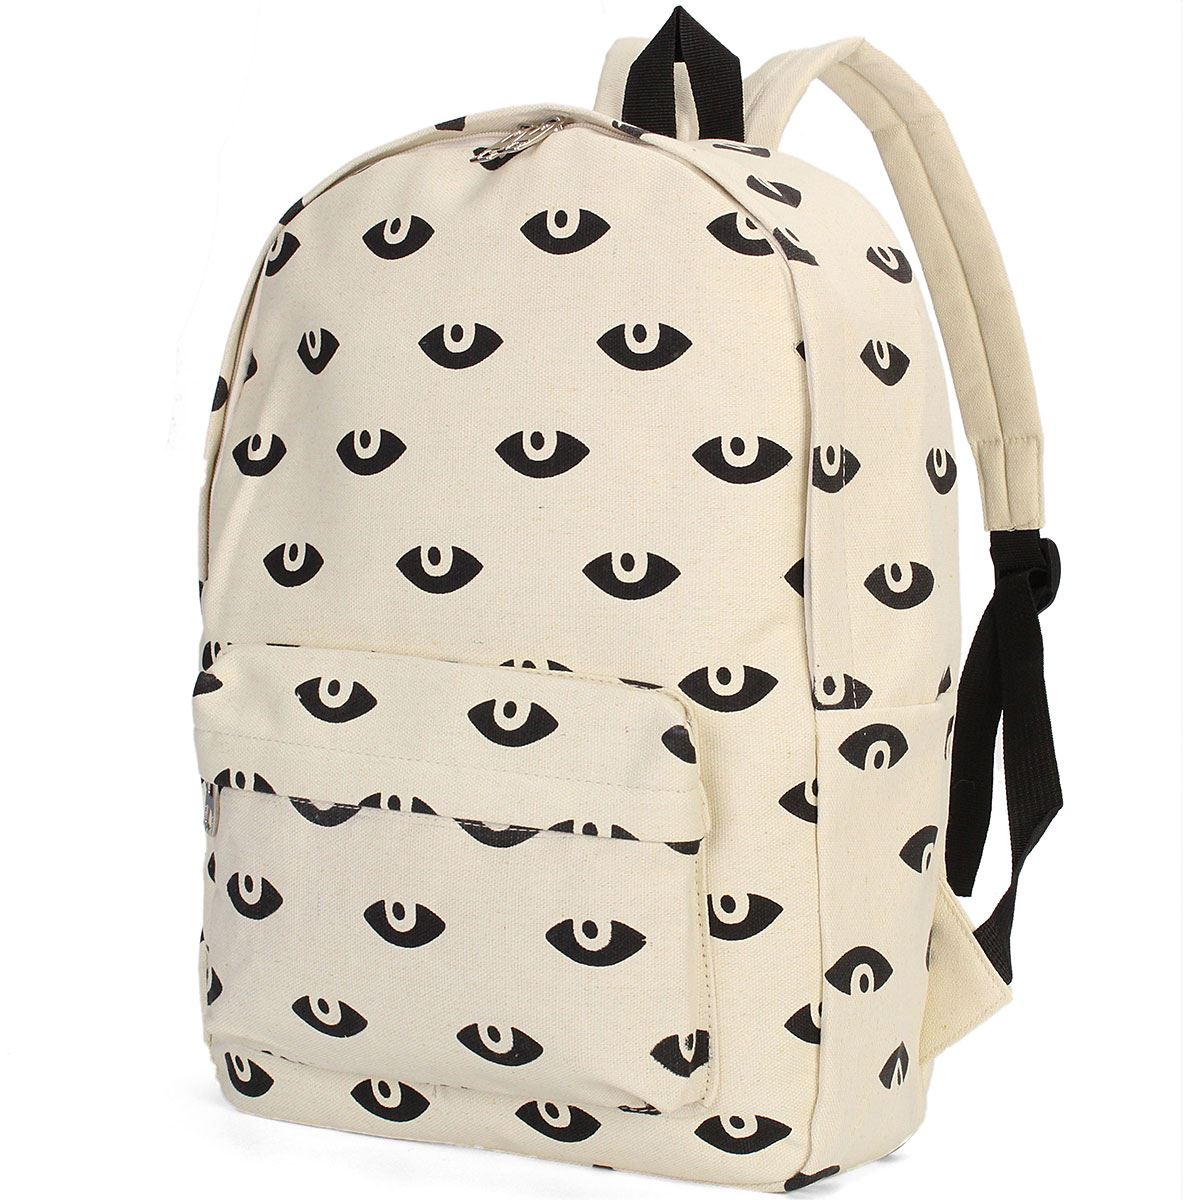 Cute Unique Backpacks - Crazy Backpacks